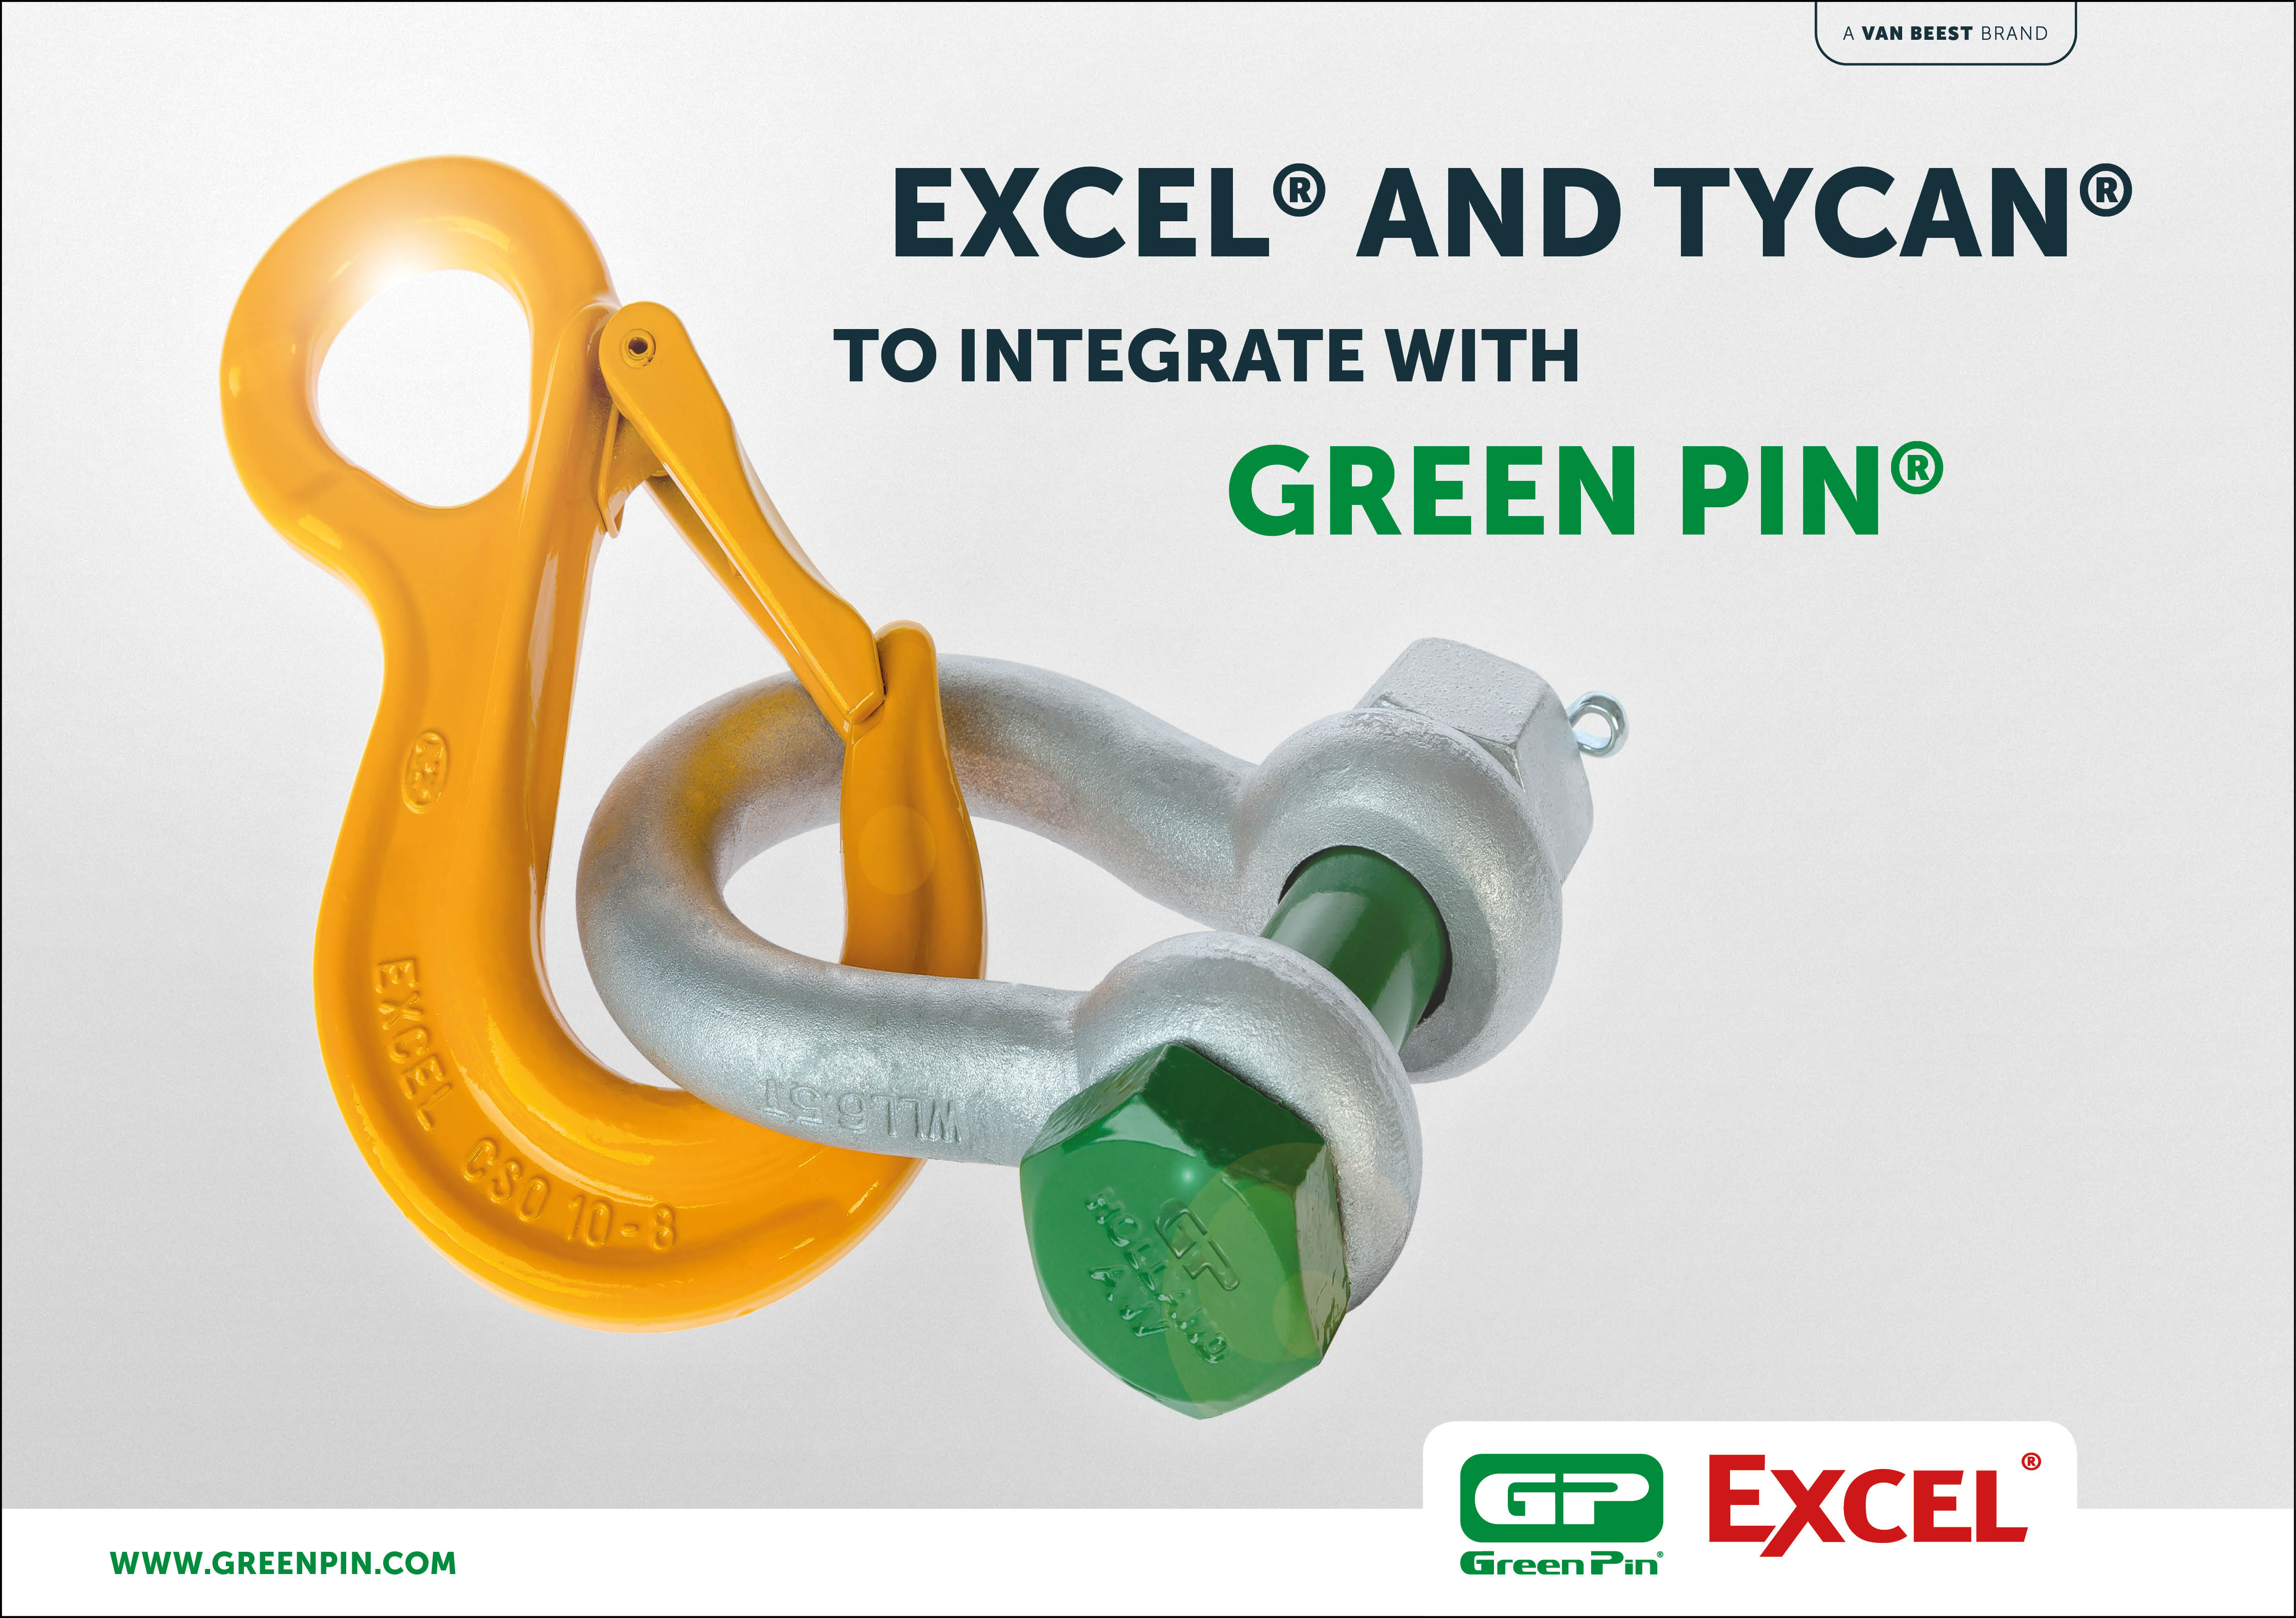 Excel® and Tycan® to integrate with Green Pin®